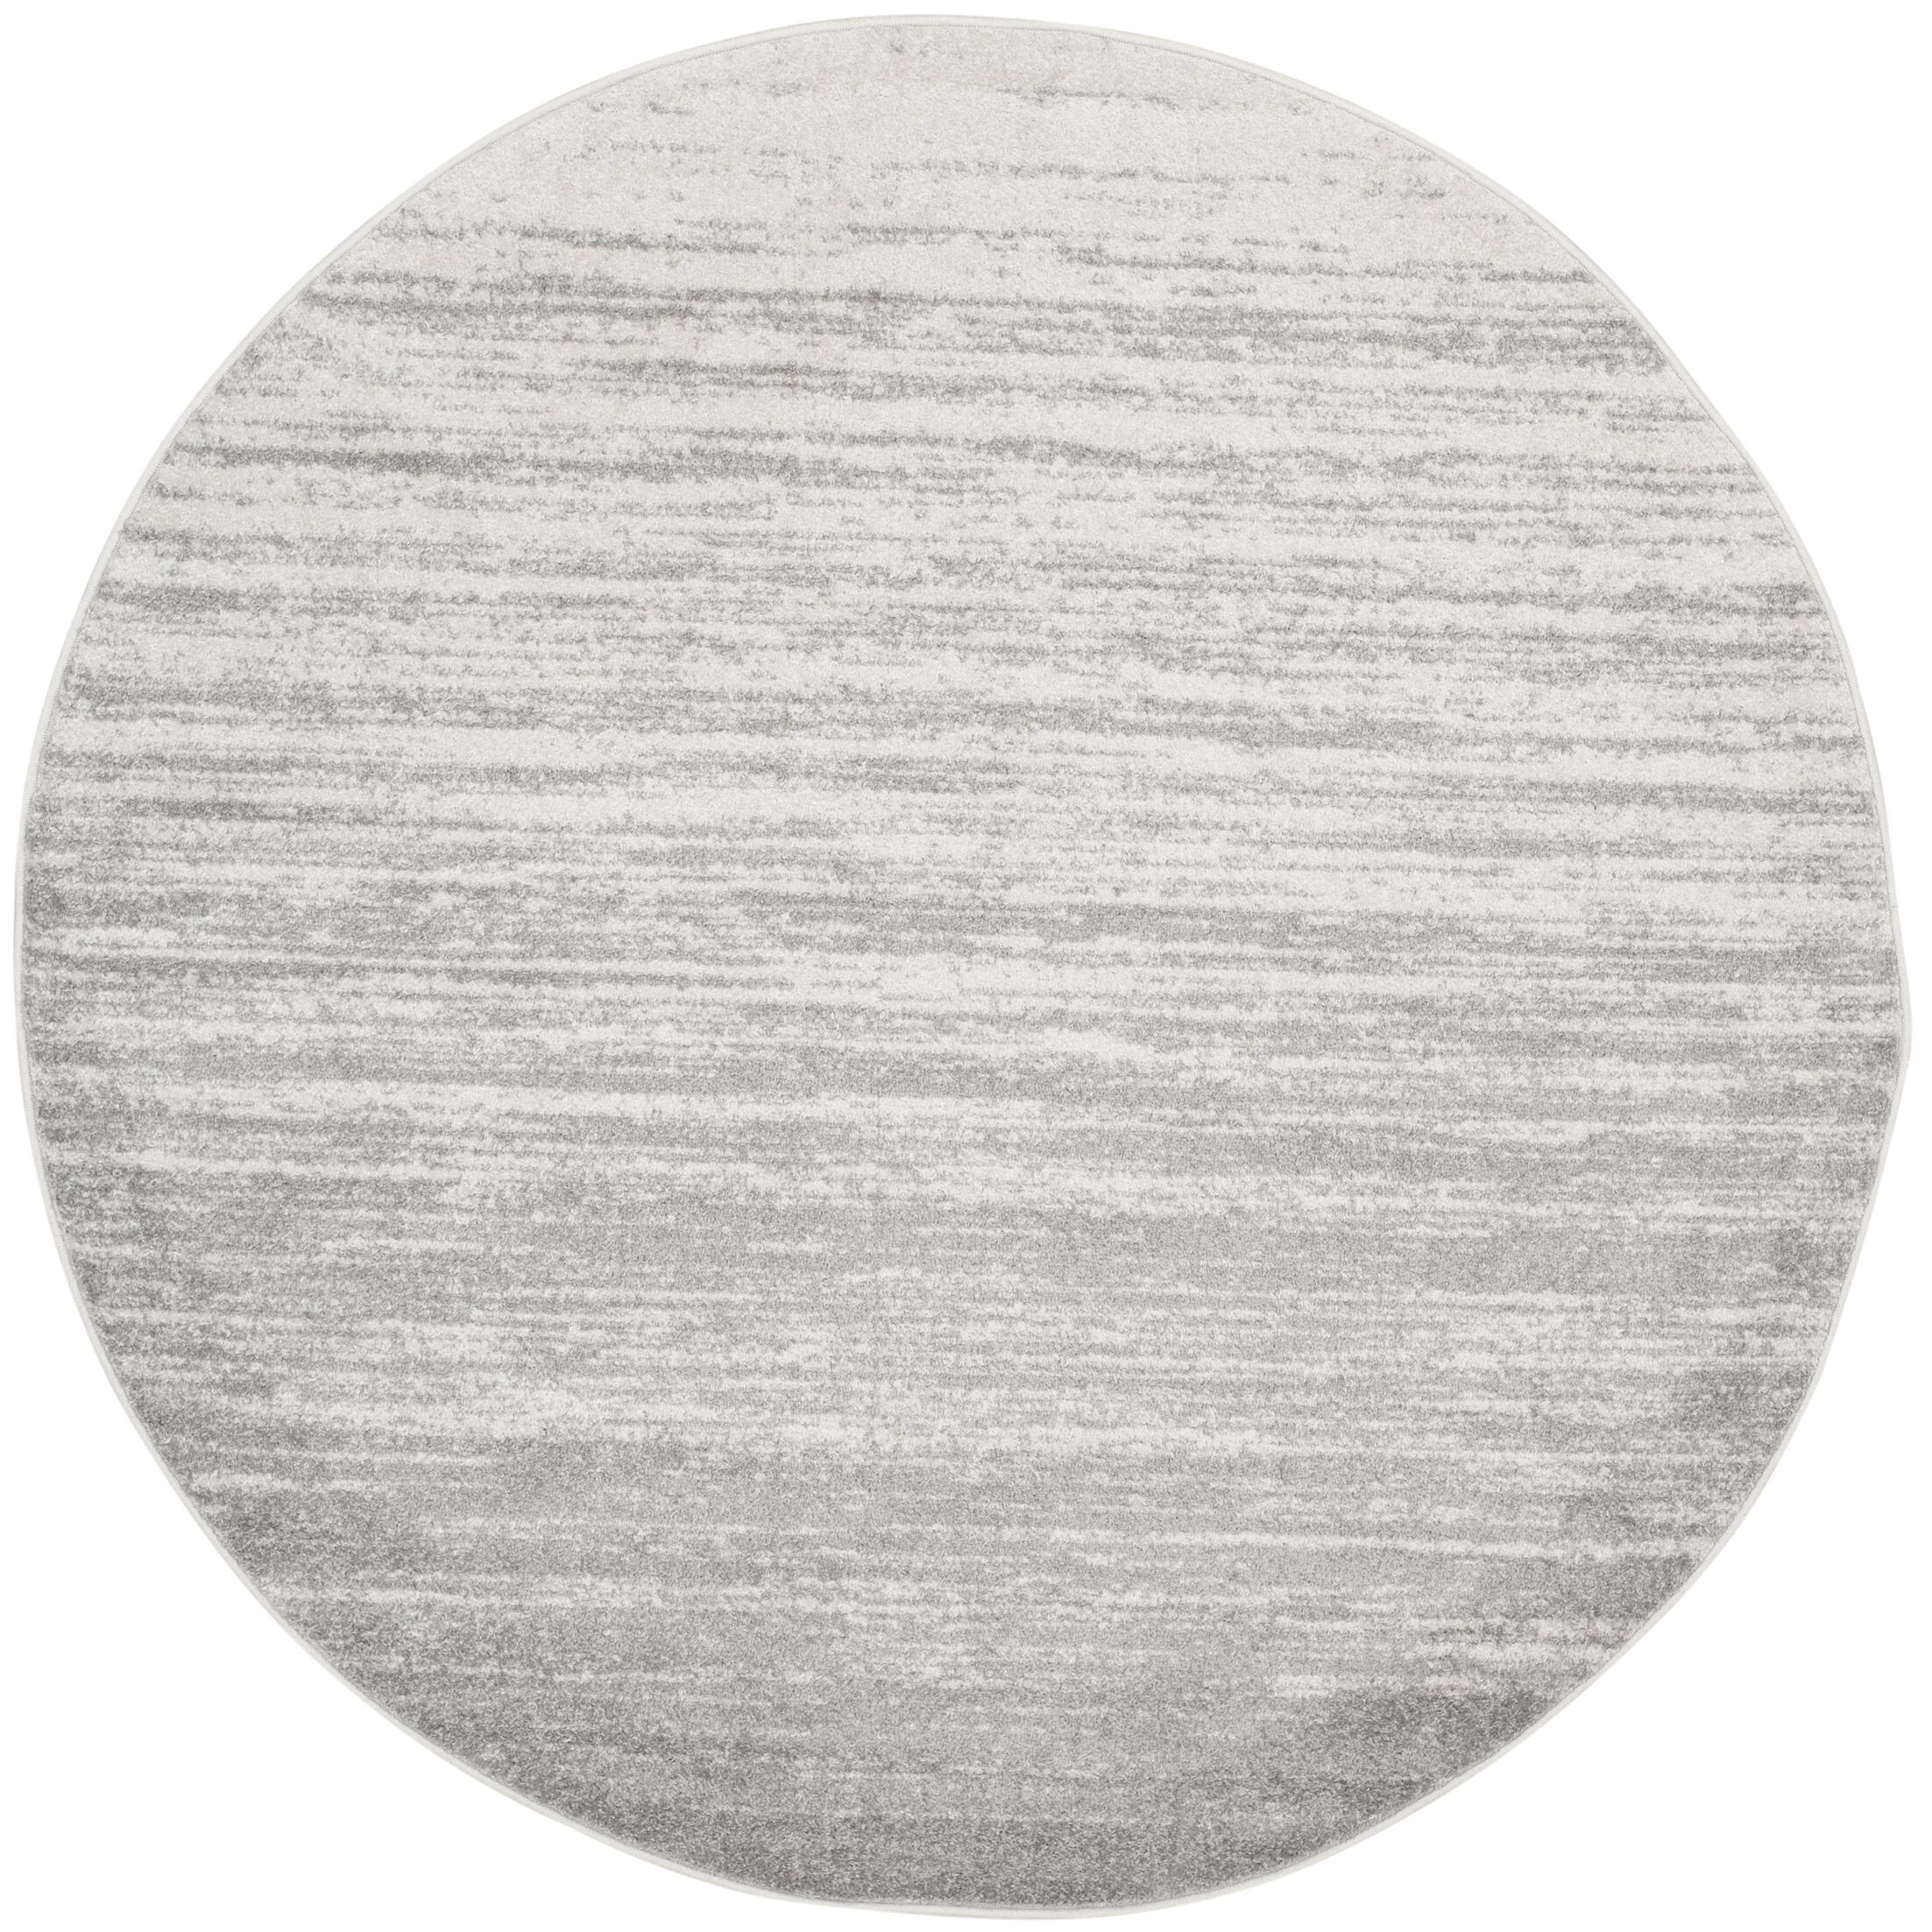 Mcguire Ivory/Silver Area Rug Rug Size: Round 8'